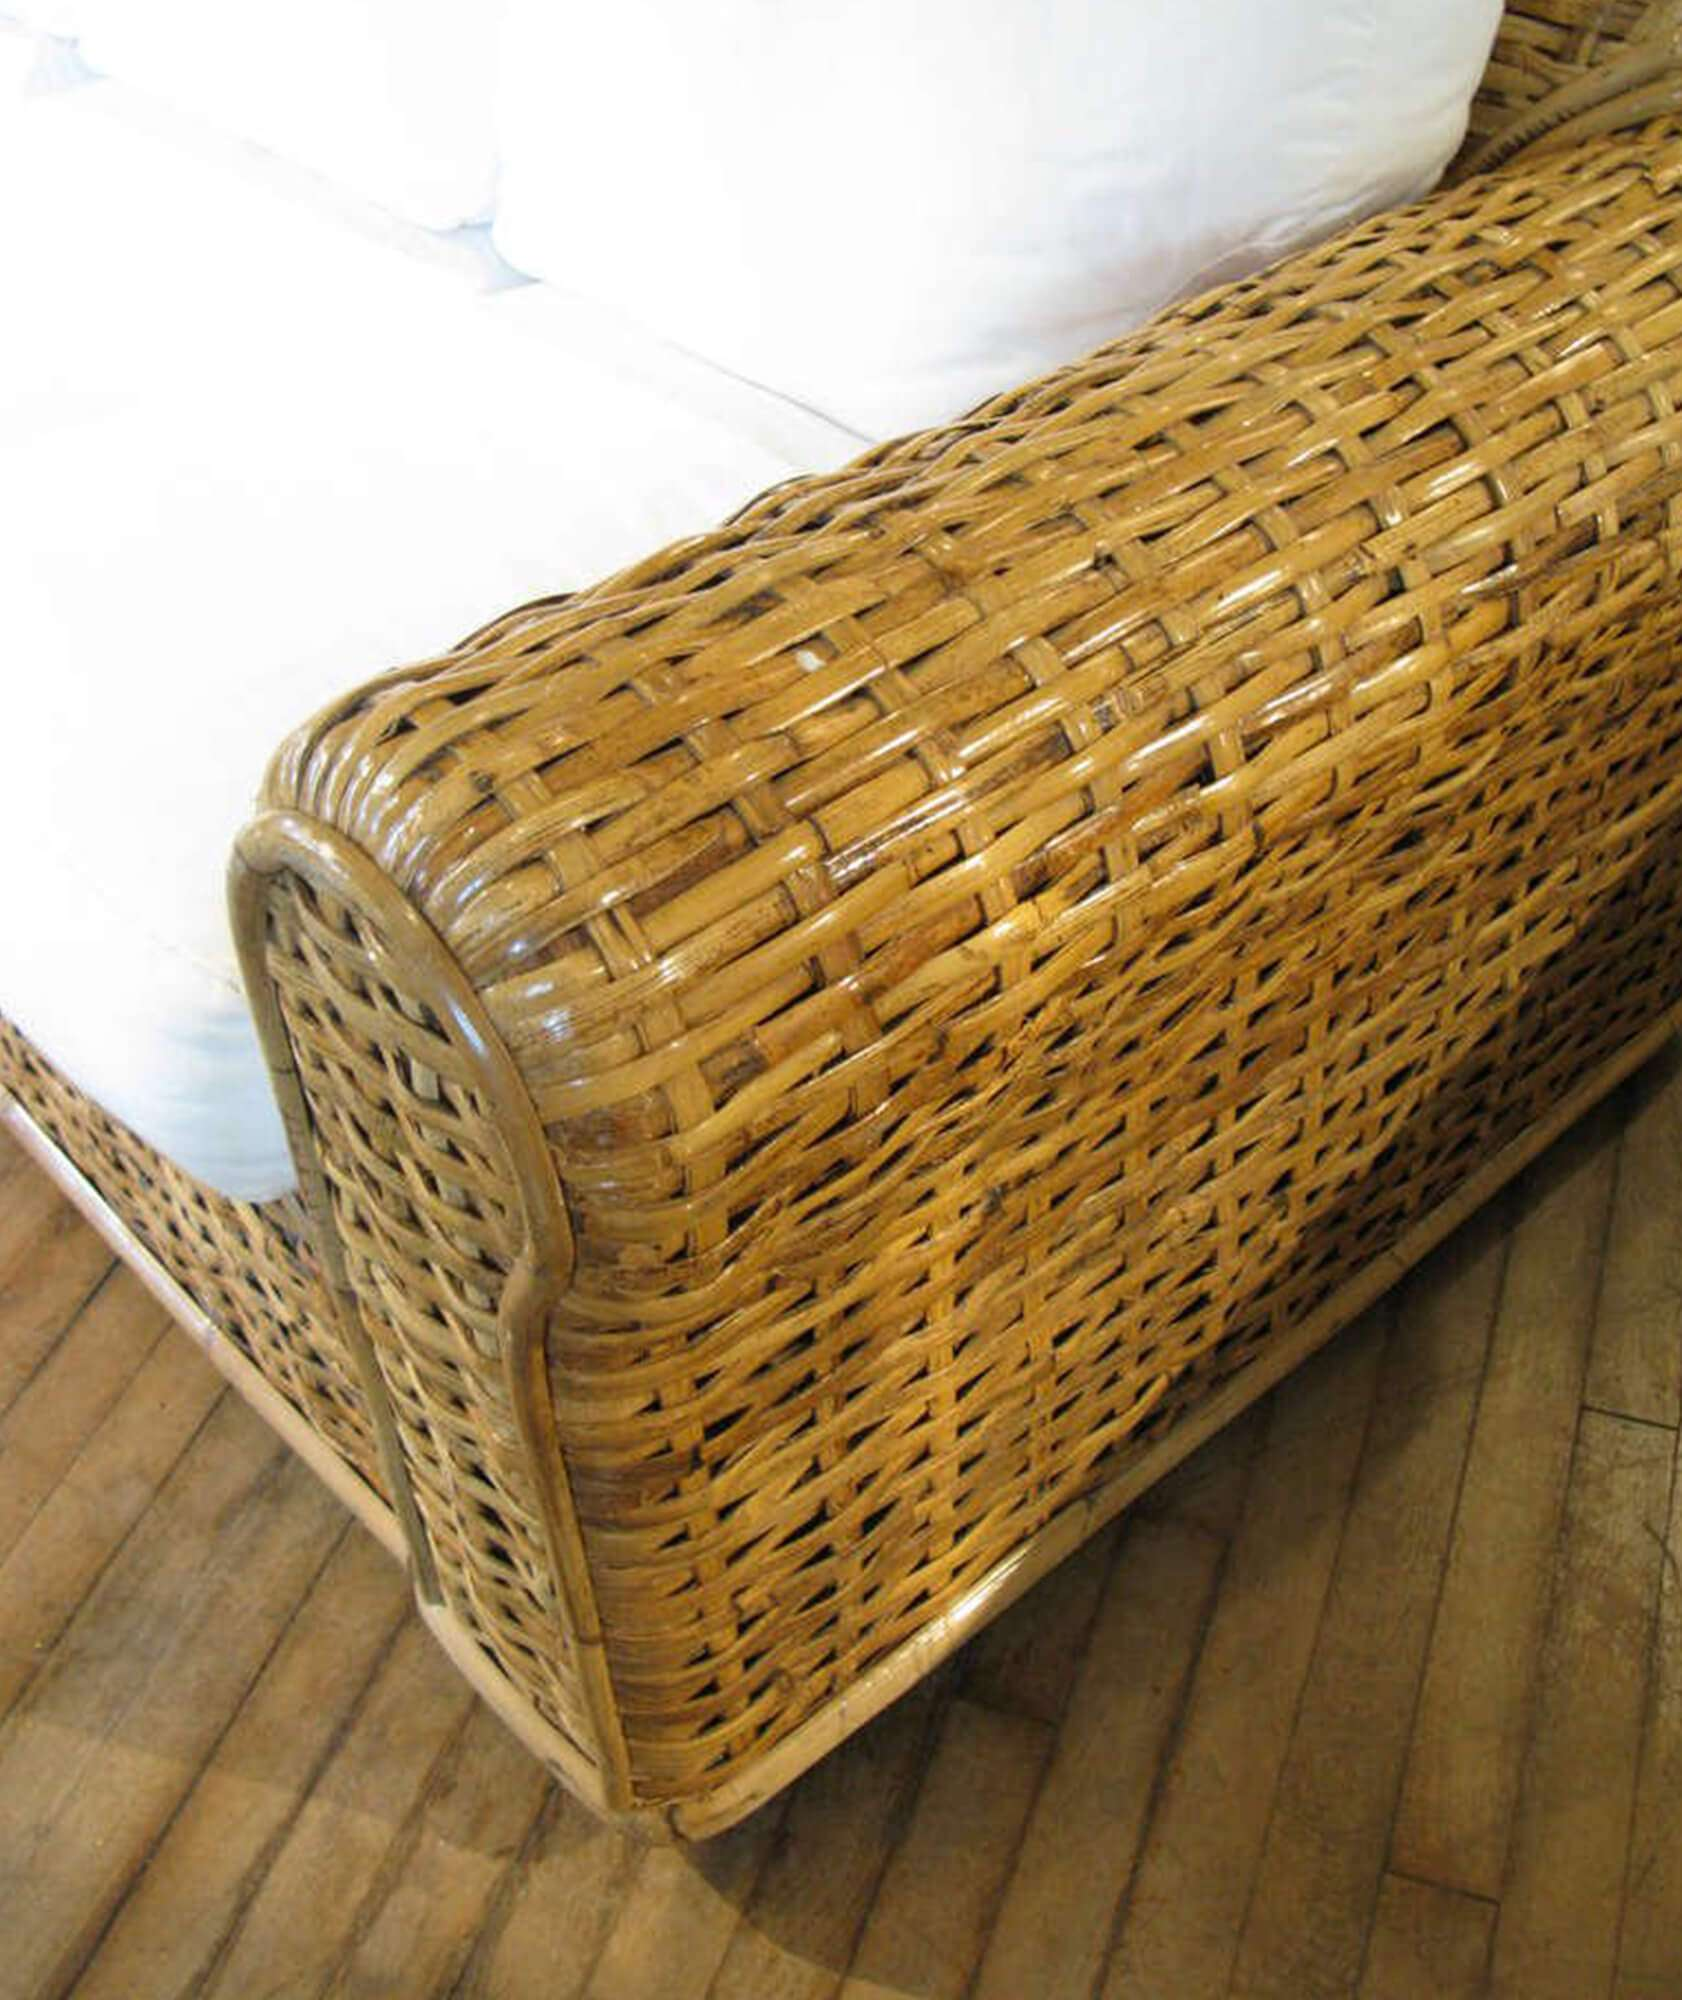 rattan furniture, rattan chair, colonial furniture